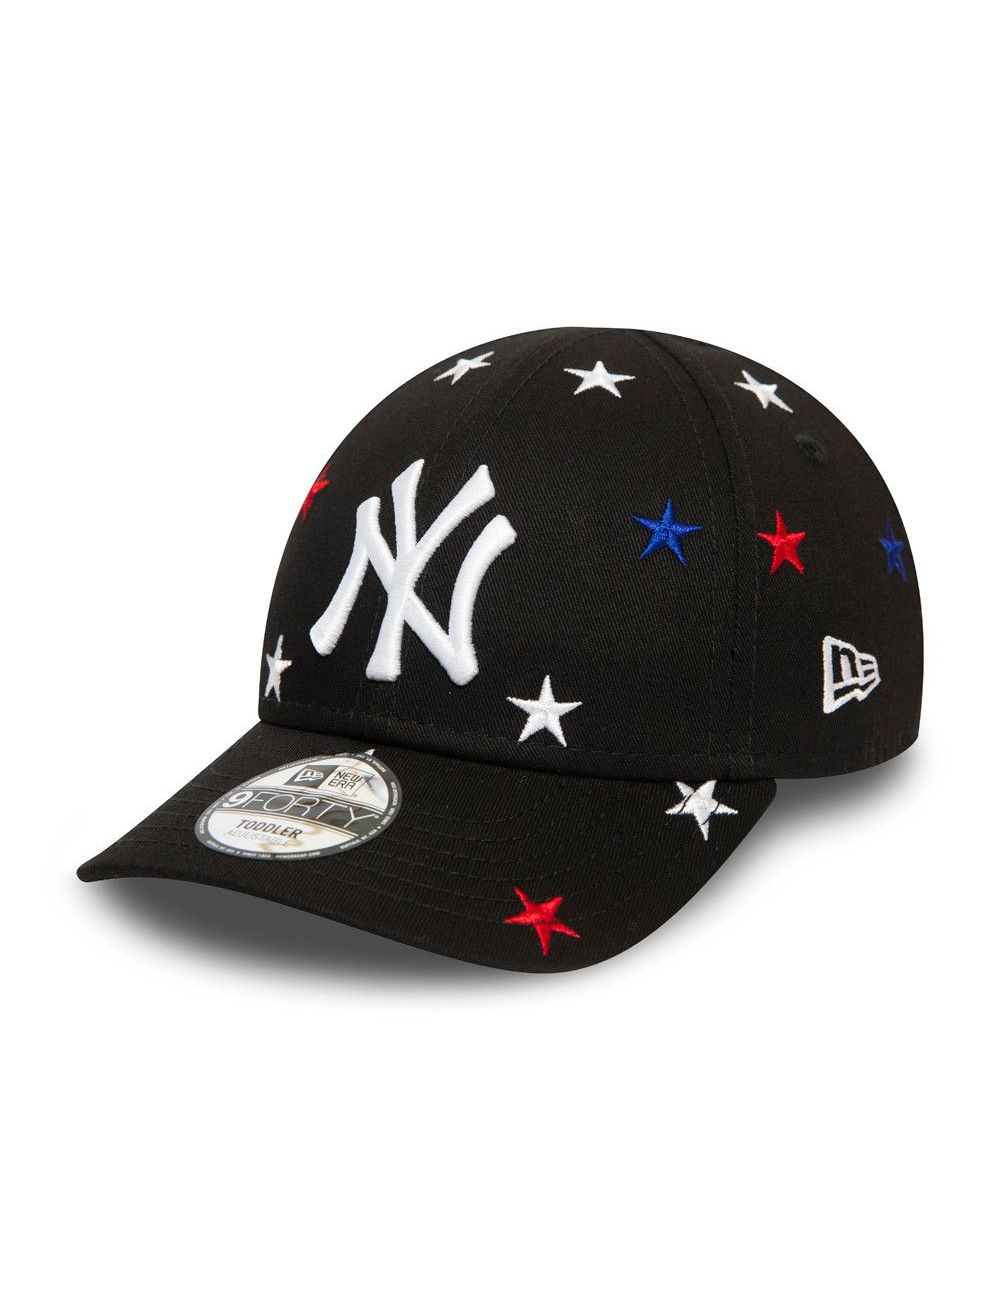 Casquette enfant/youth 9FORTY Stars NY Yankees